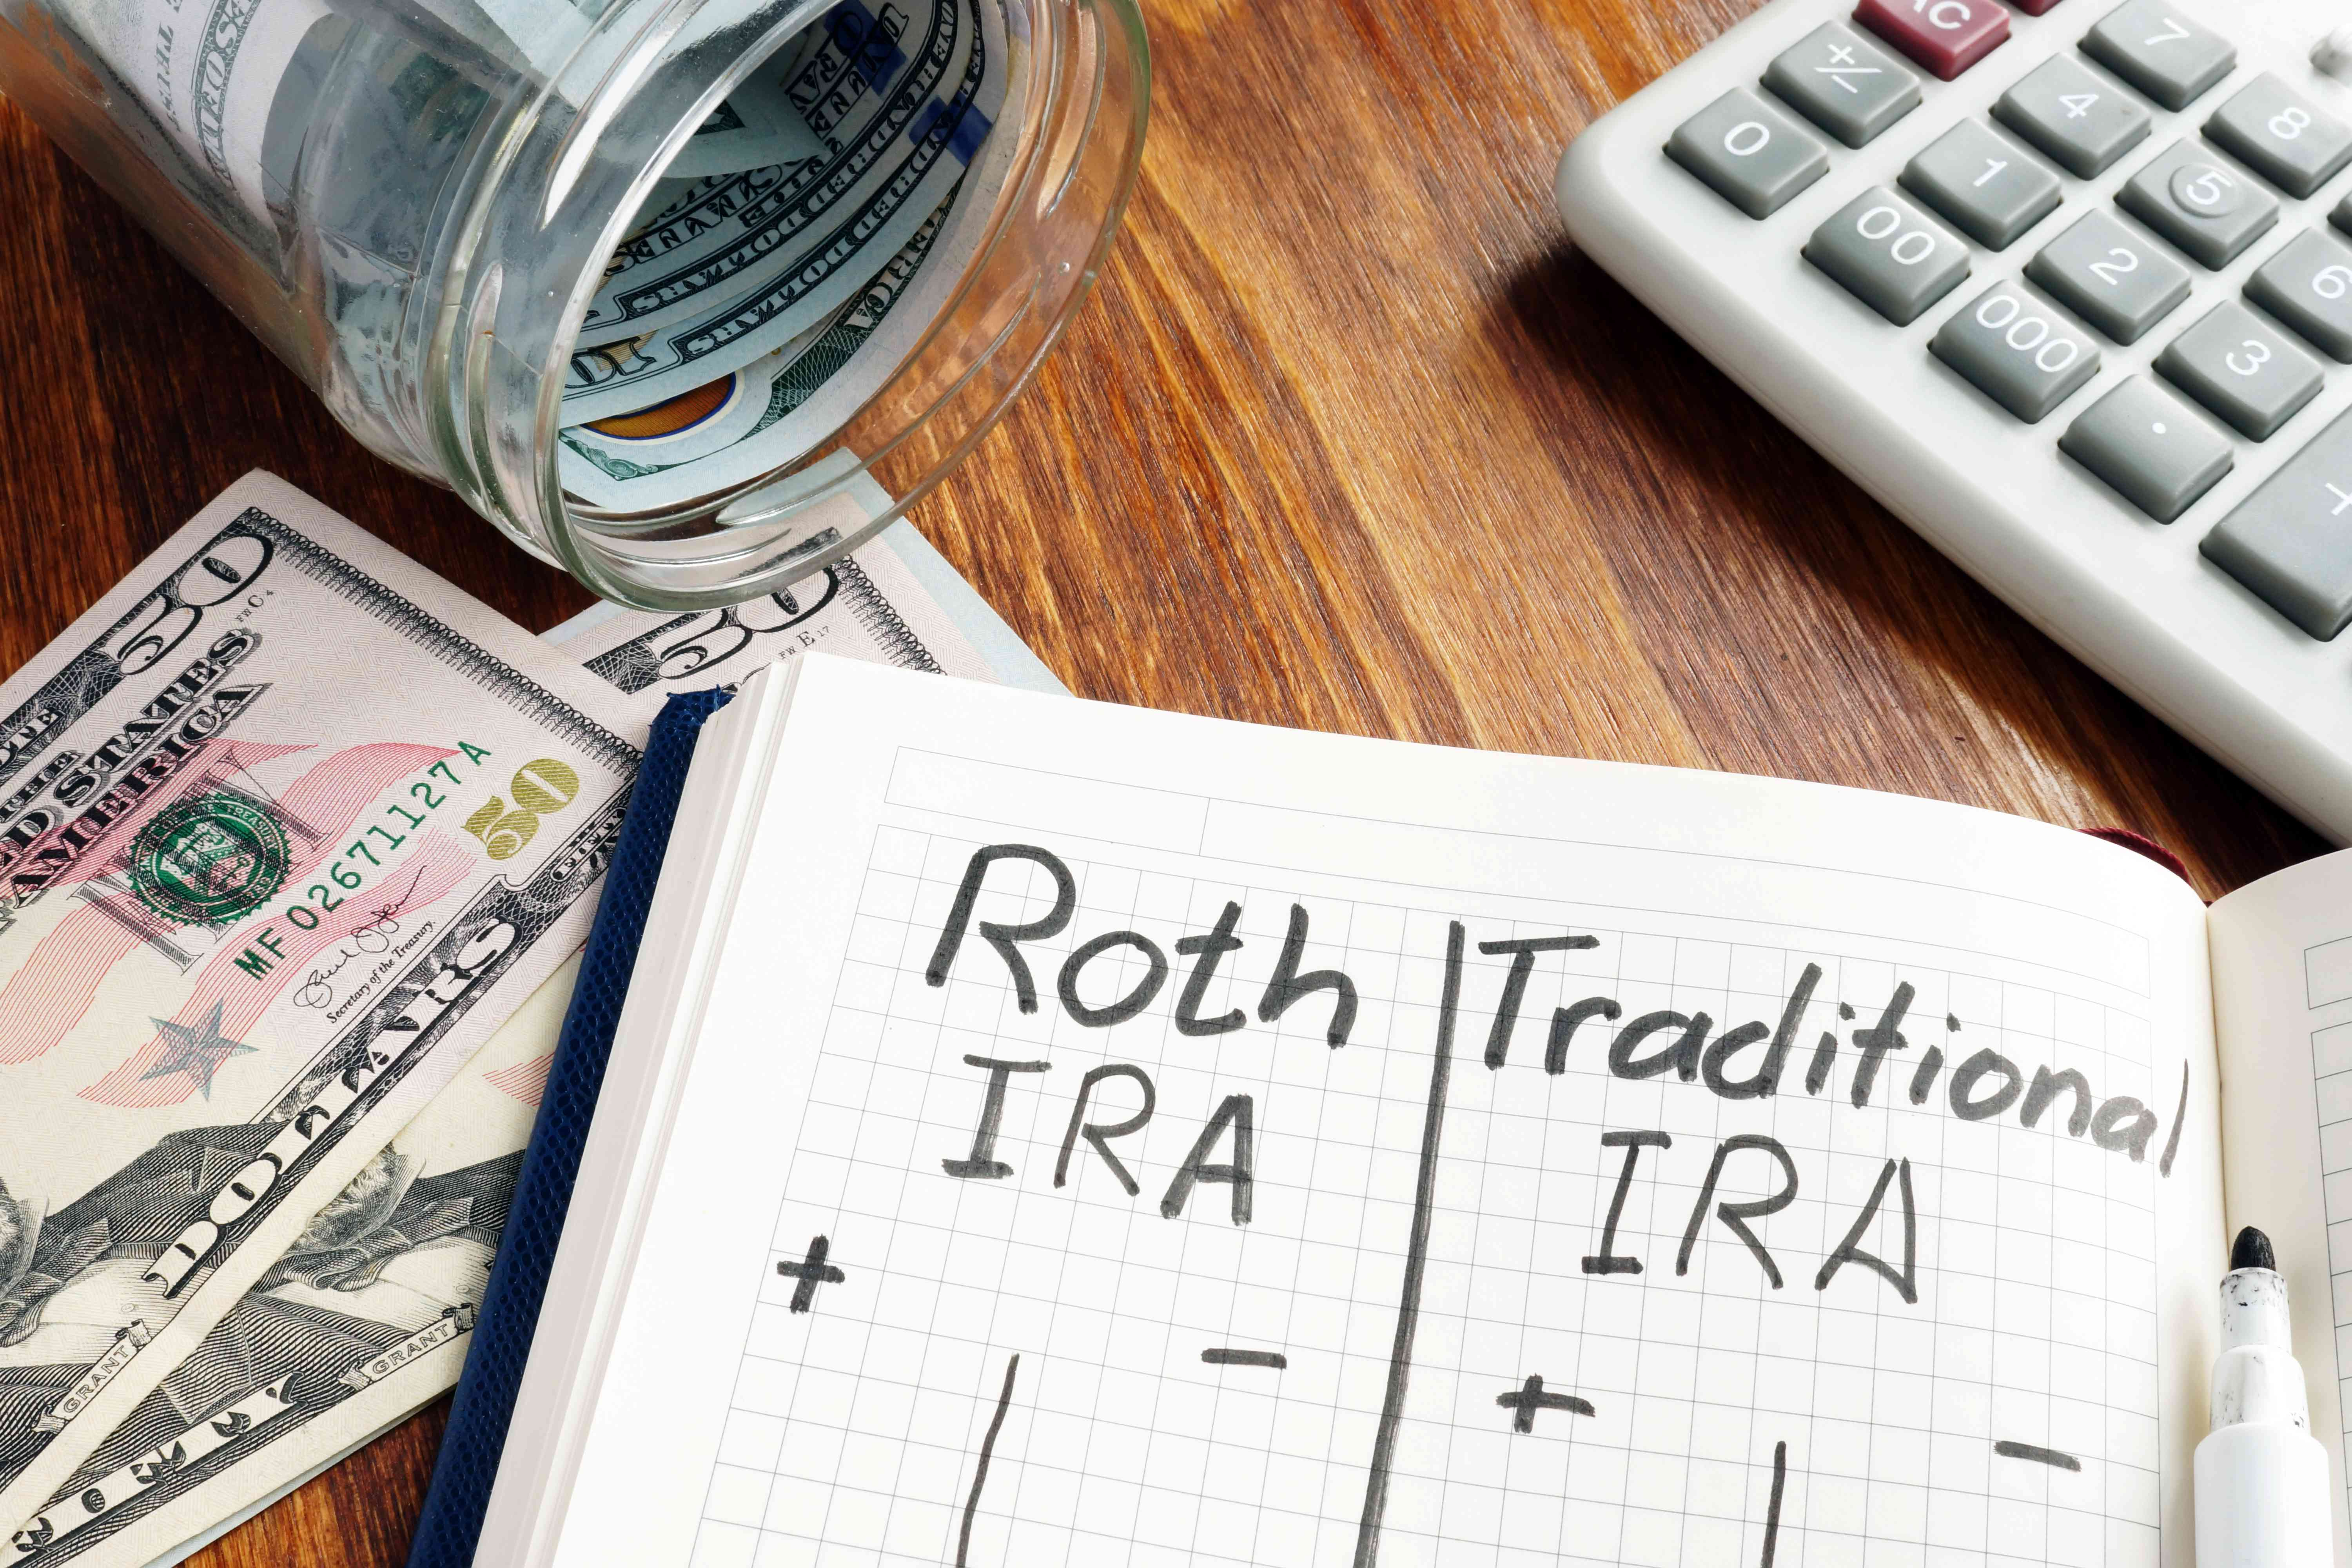 Jar of money with calculator and notebook with Roth IRA and Traditional IRA written down